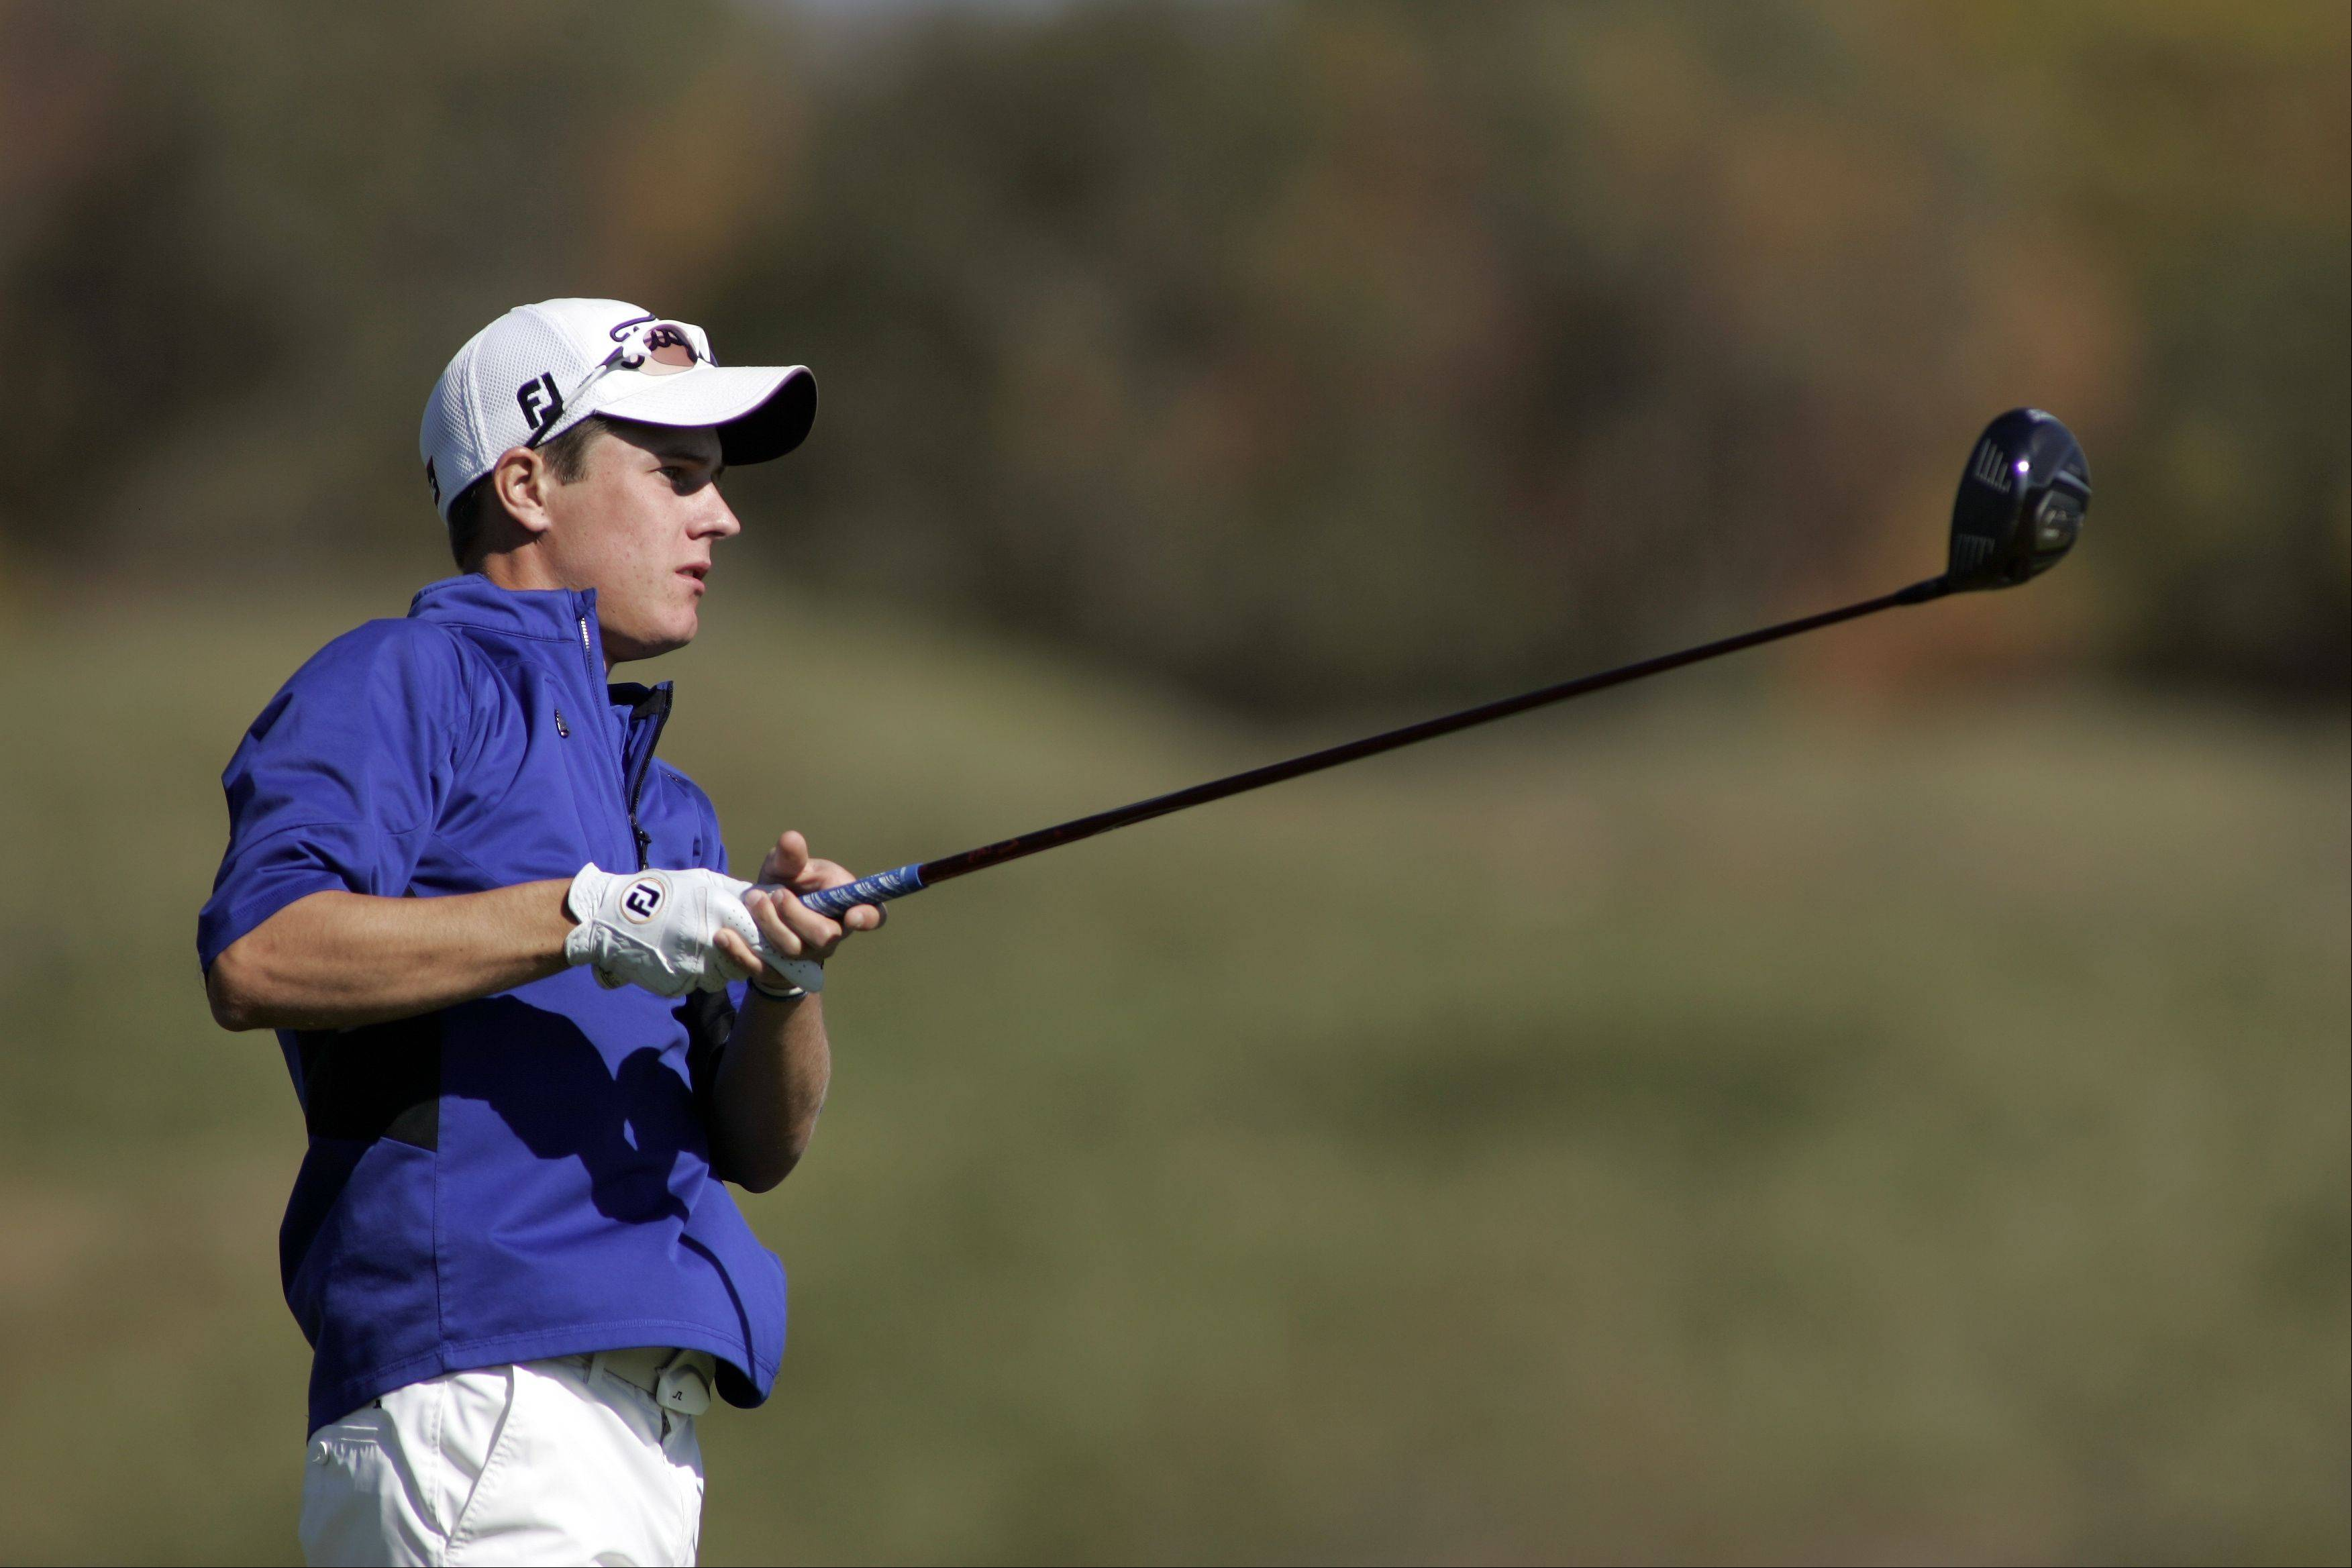 Geneva's Colin Lillibridge watches his tee shot on the 11th hole during the Larkin boys golf regional at The Highlands of Elgin Golf Course Tuesday October 2, 2012 in Elgin.